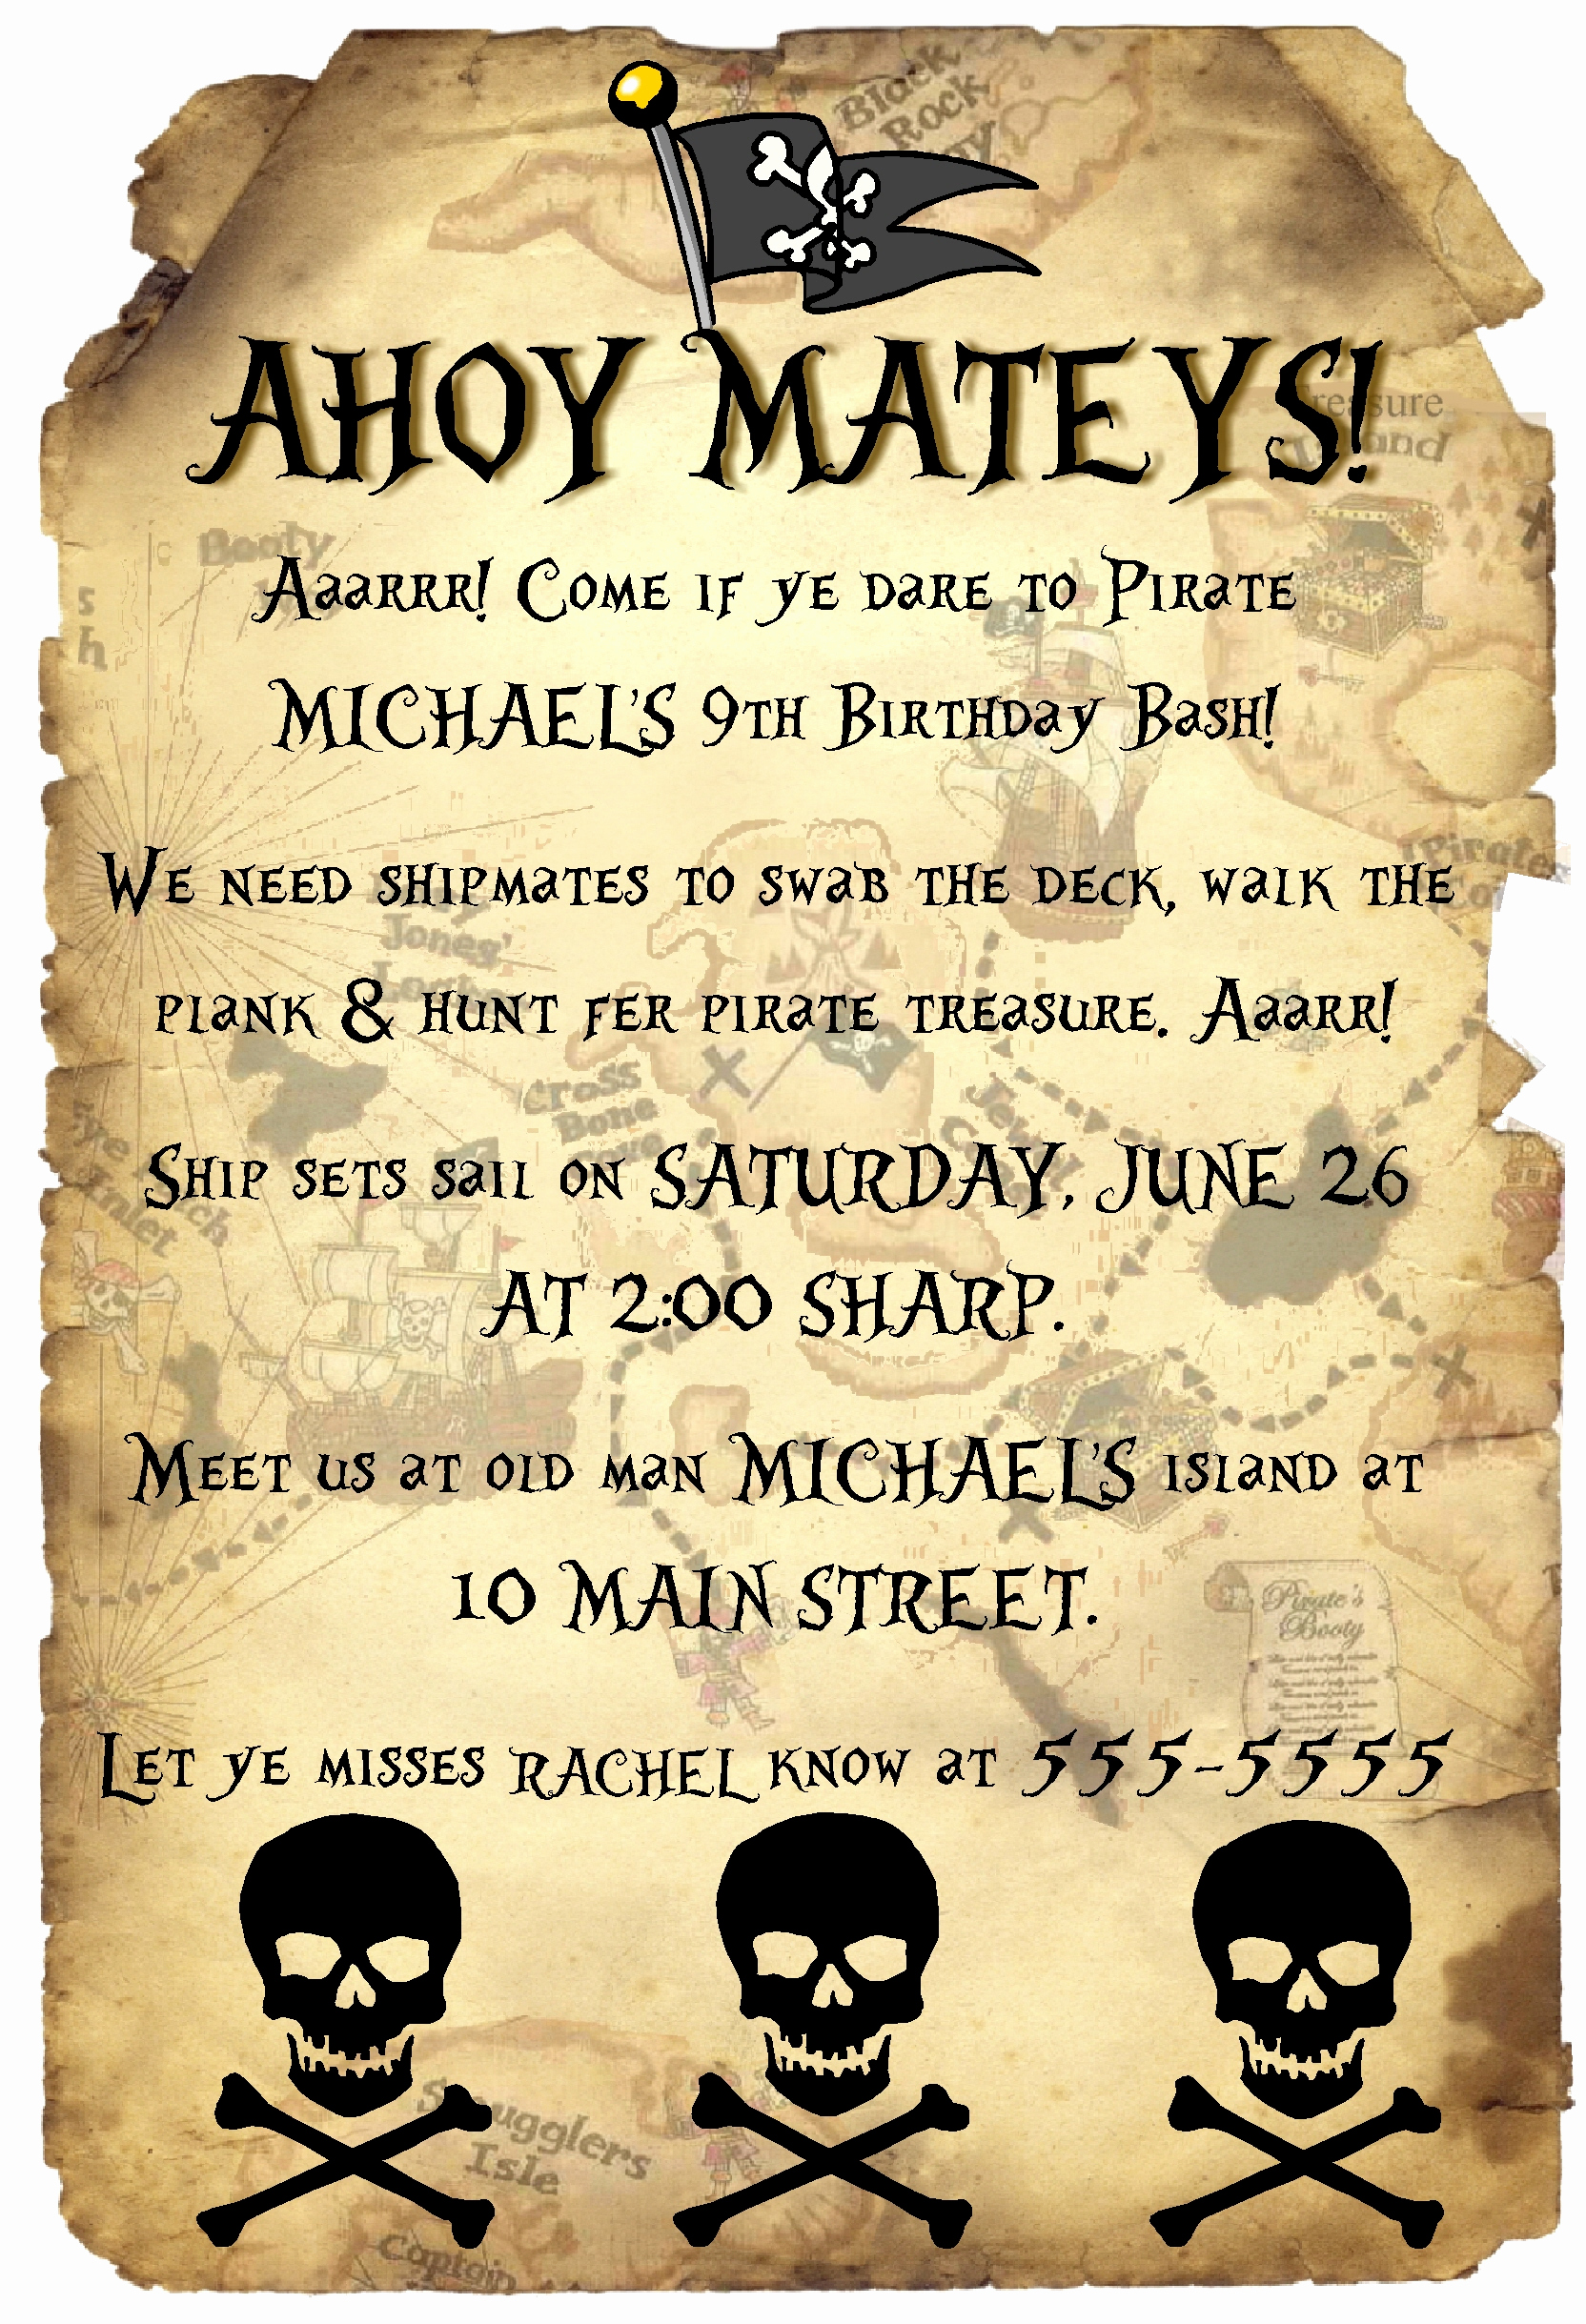 Pirate Party Invitation Templates Luxury Adult Pirate Party Invitations